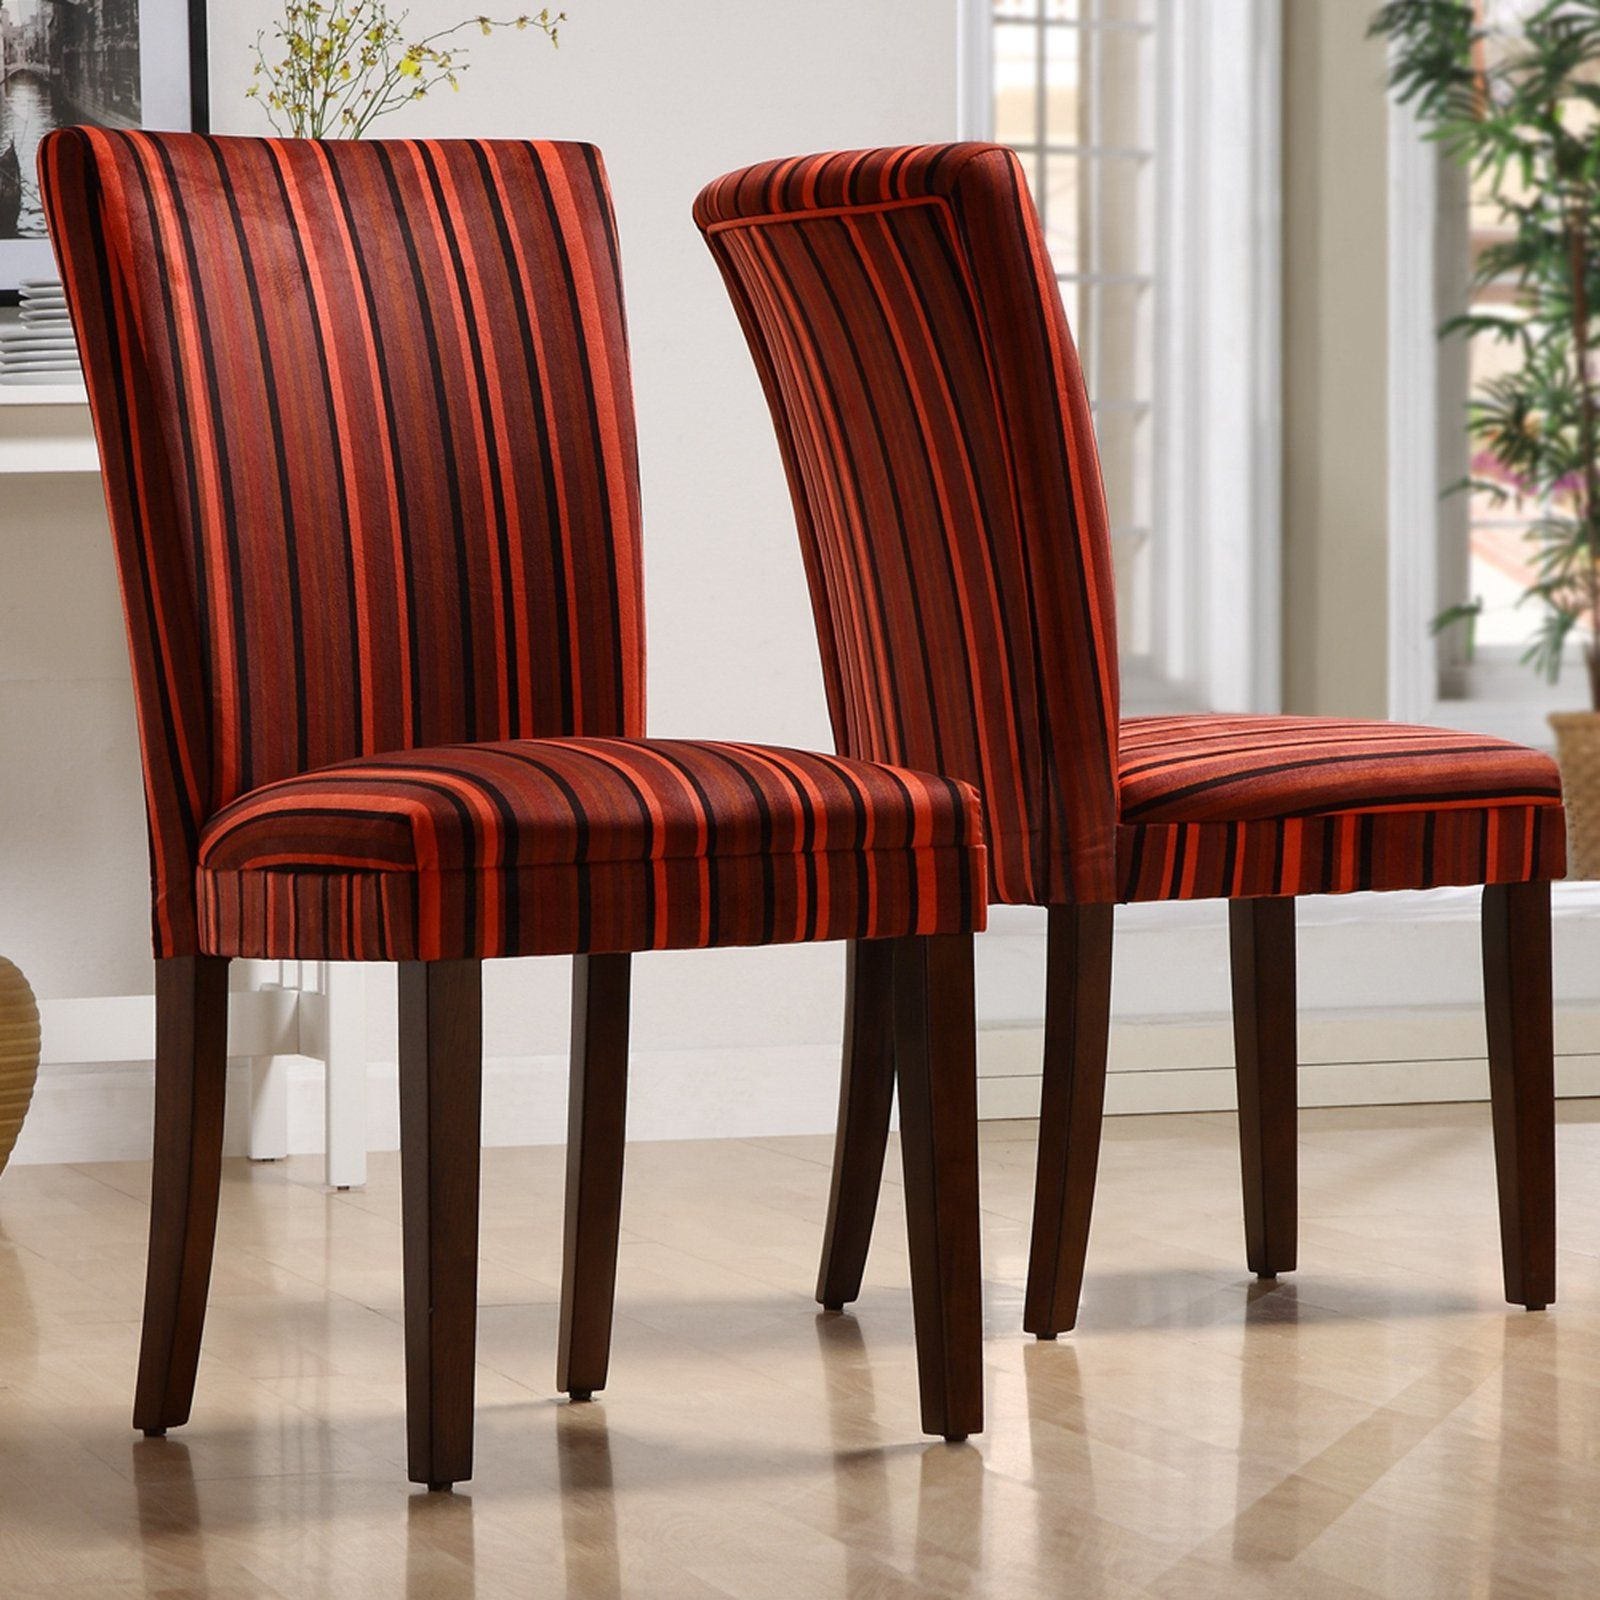 Homelegance Royal Red Striped Design Fabric Parson Chairs Brown Set Of 2 Dining